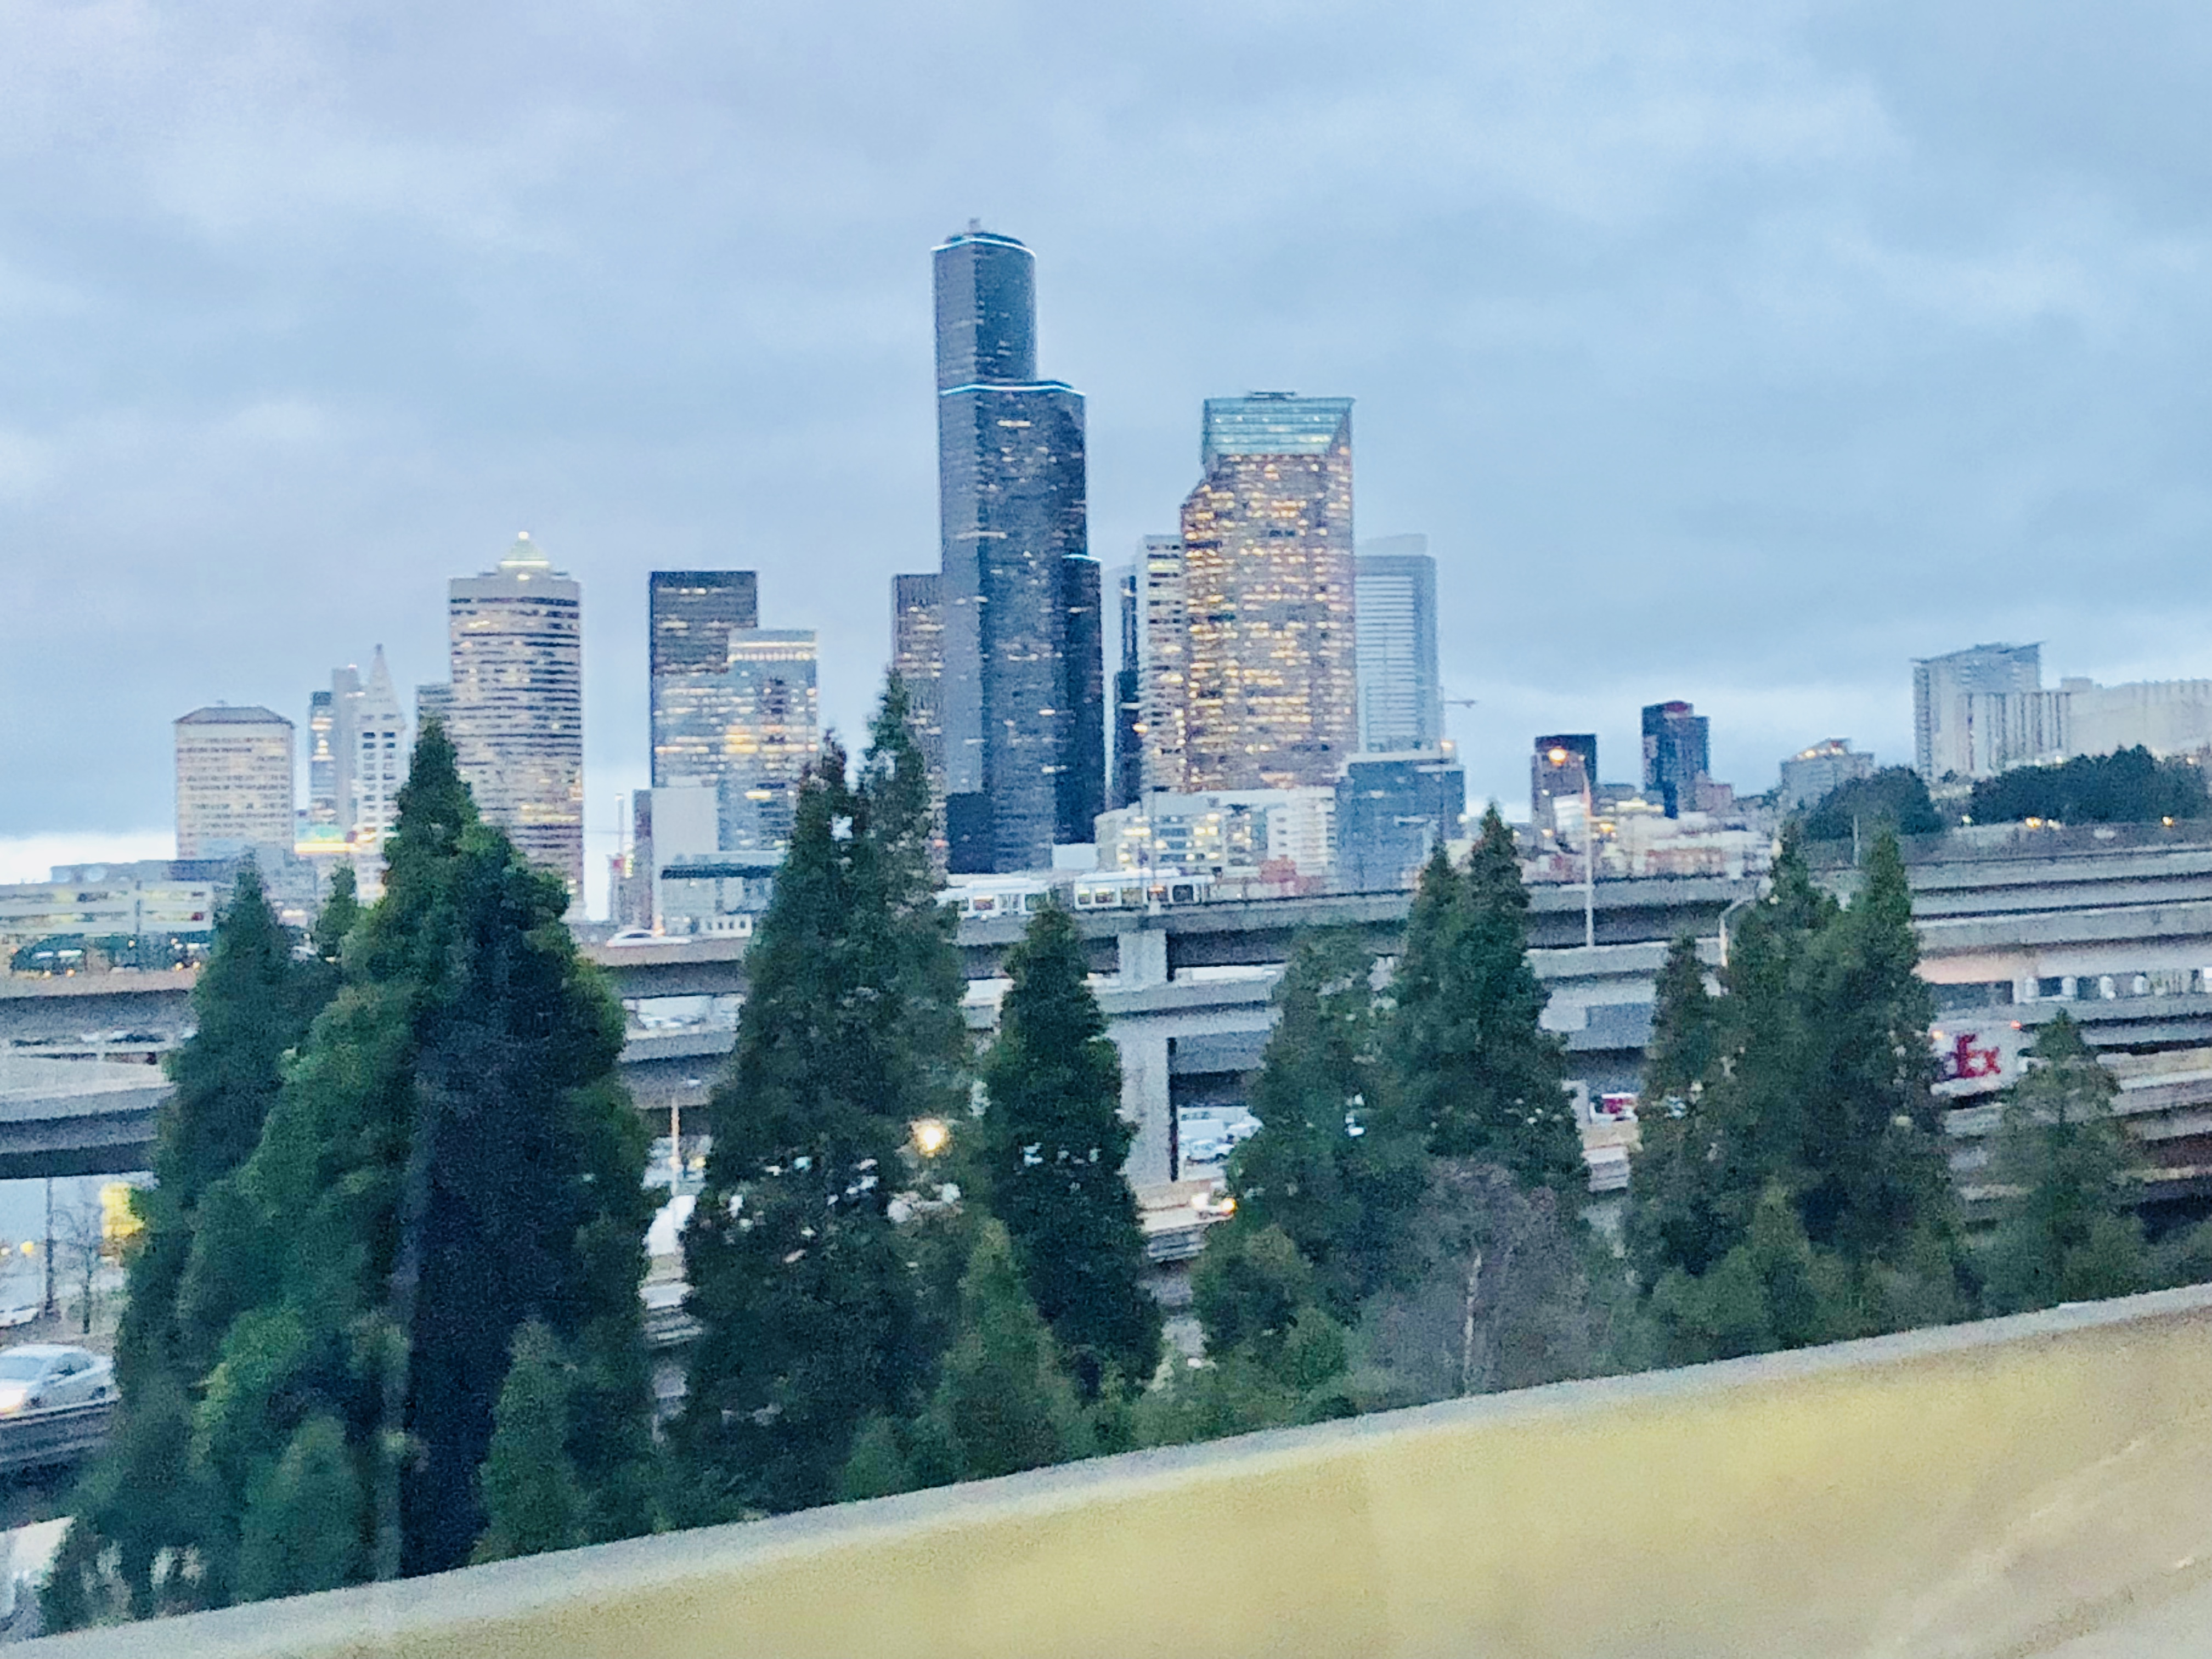 Downtown Seattle - Photograph by Rianna Richards on Feb. 02, 2018. Blog, Novel